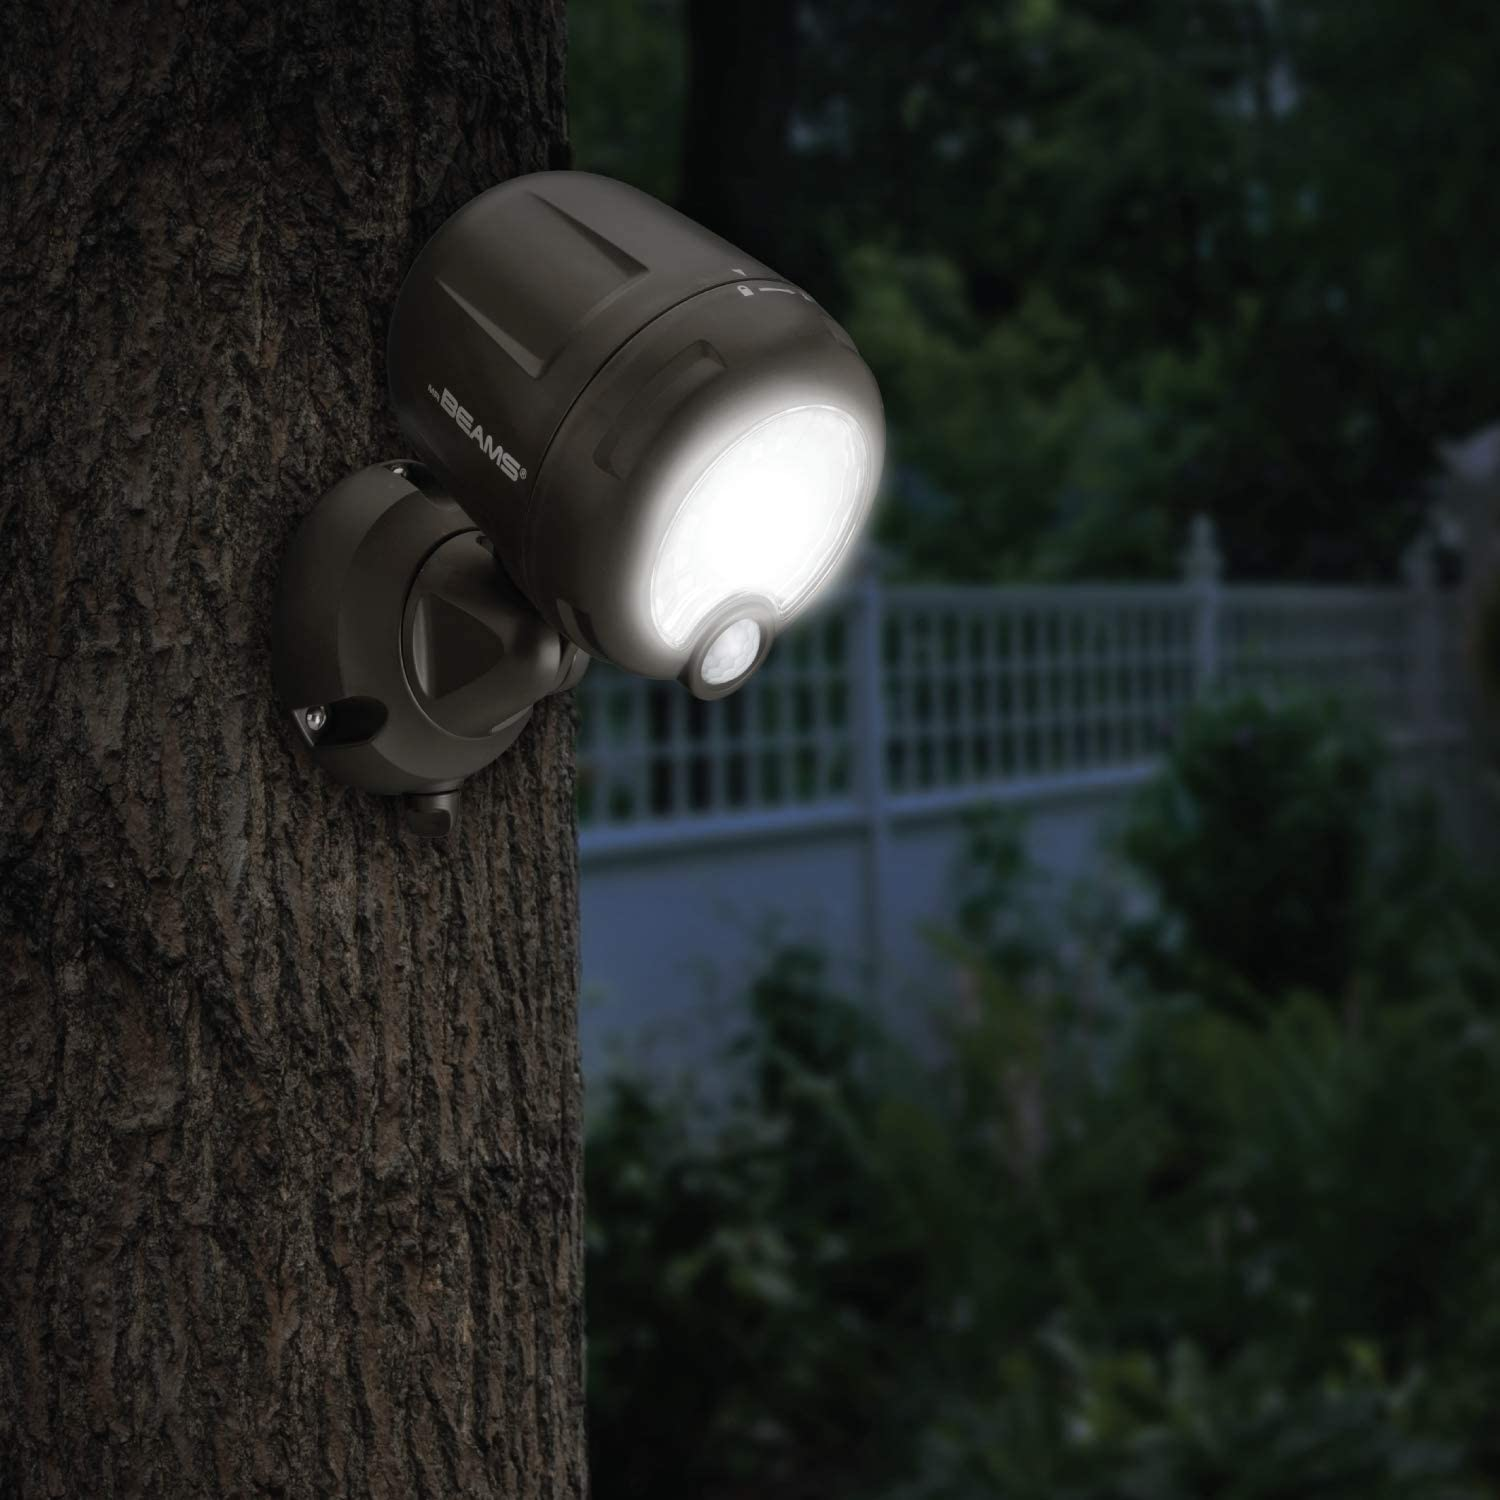 Mr. Beams MB360XT-Brn-01-00 Wireless 200 Lm Battery-Operated Outdoor Motion-Sensor-Activated LED Spotlight, Brown - -